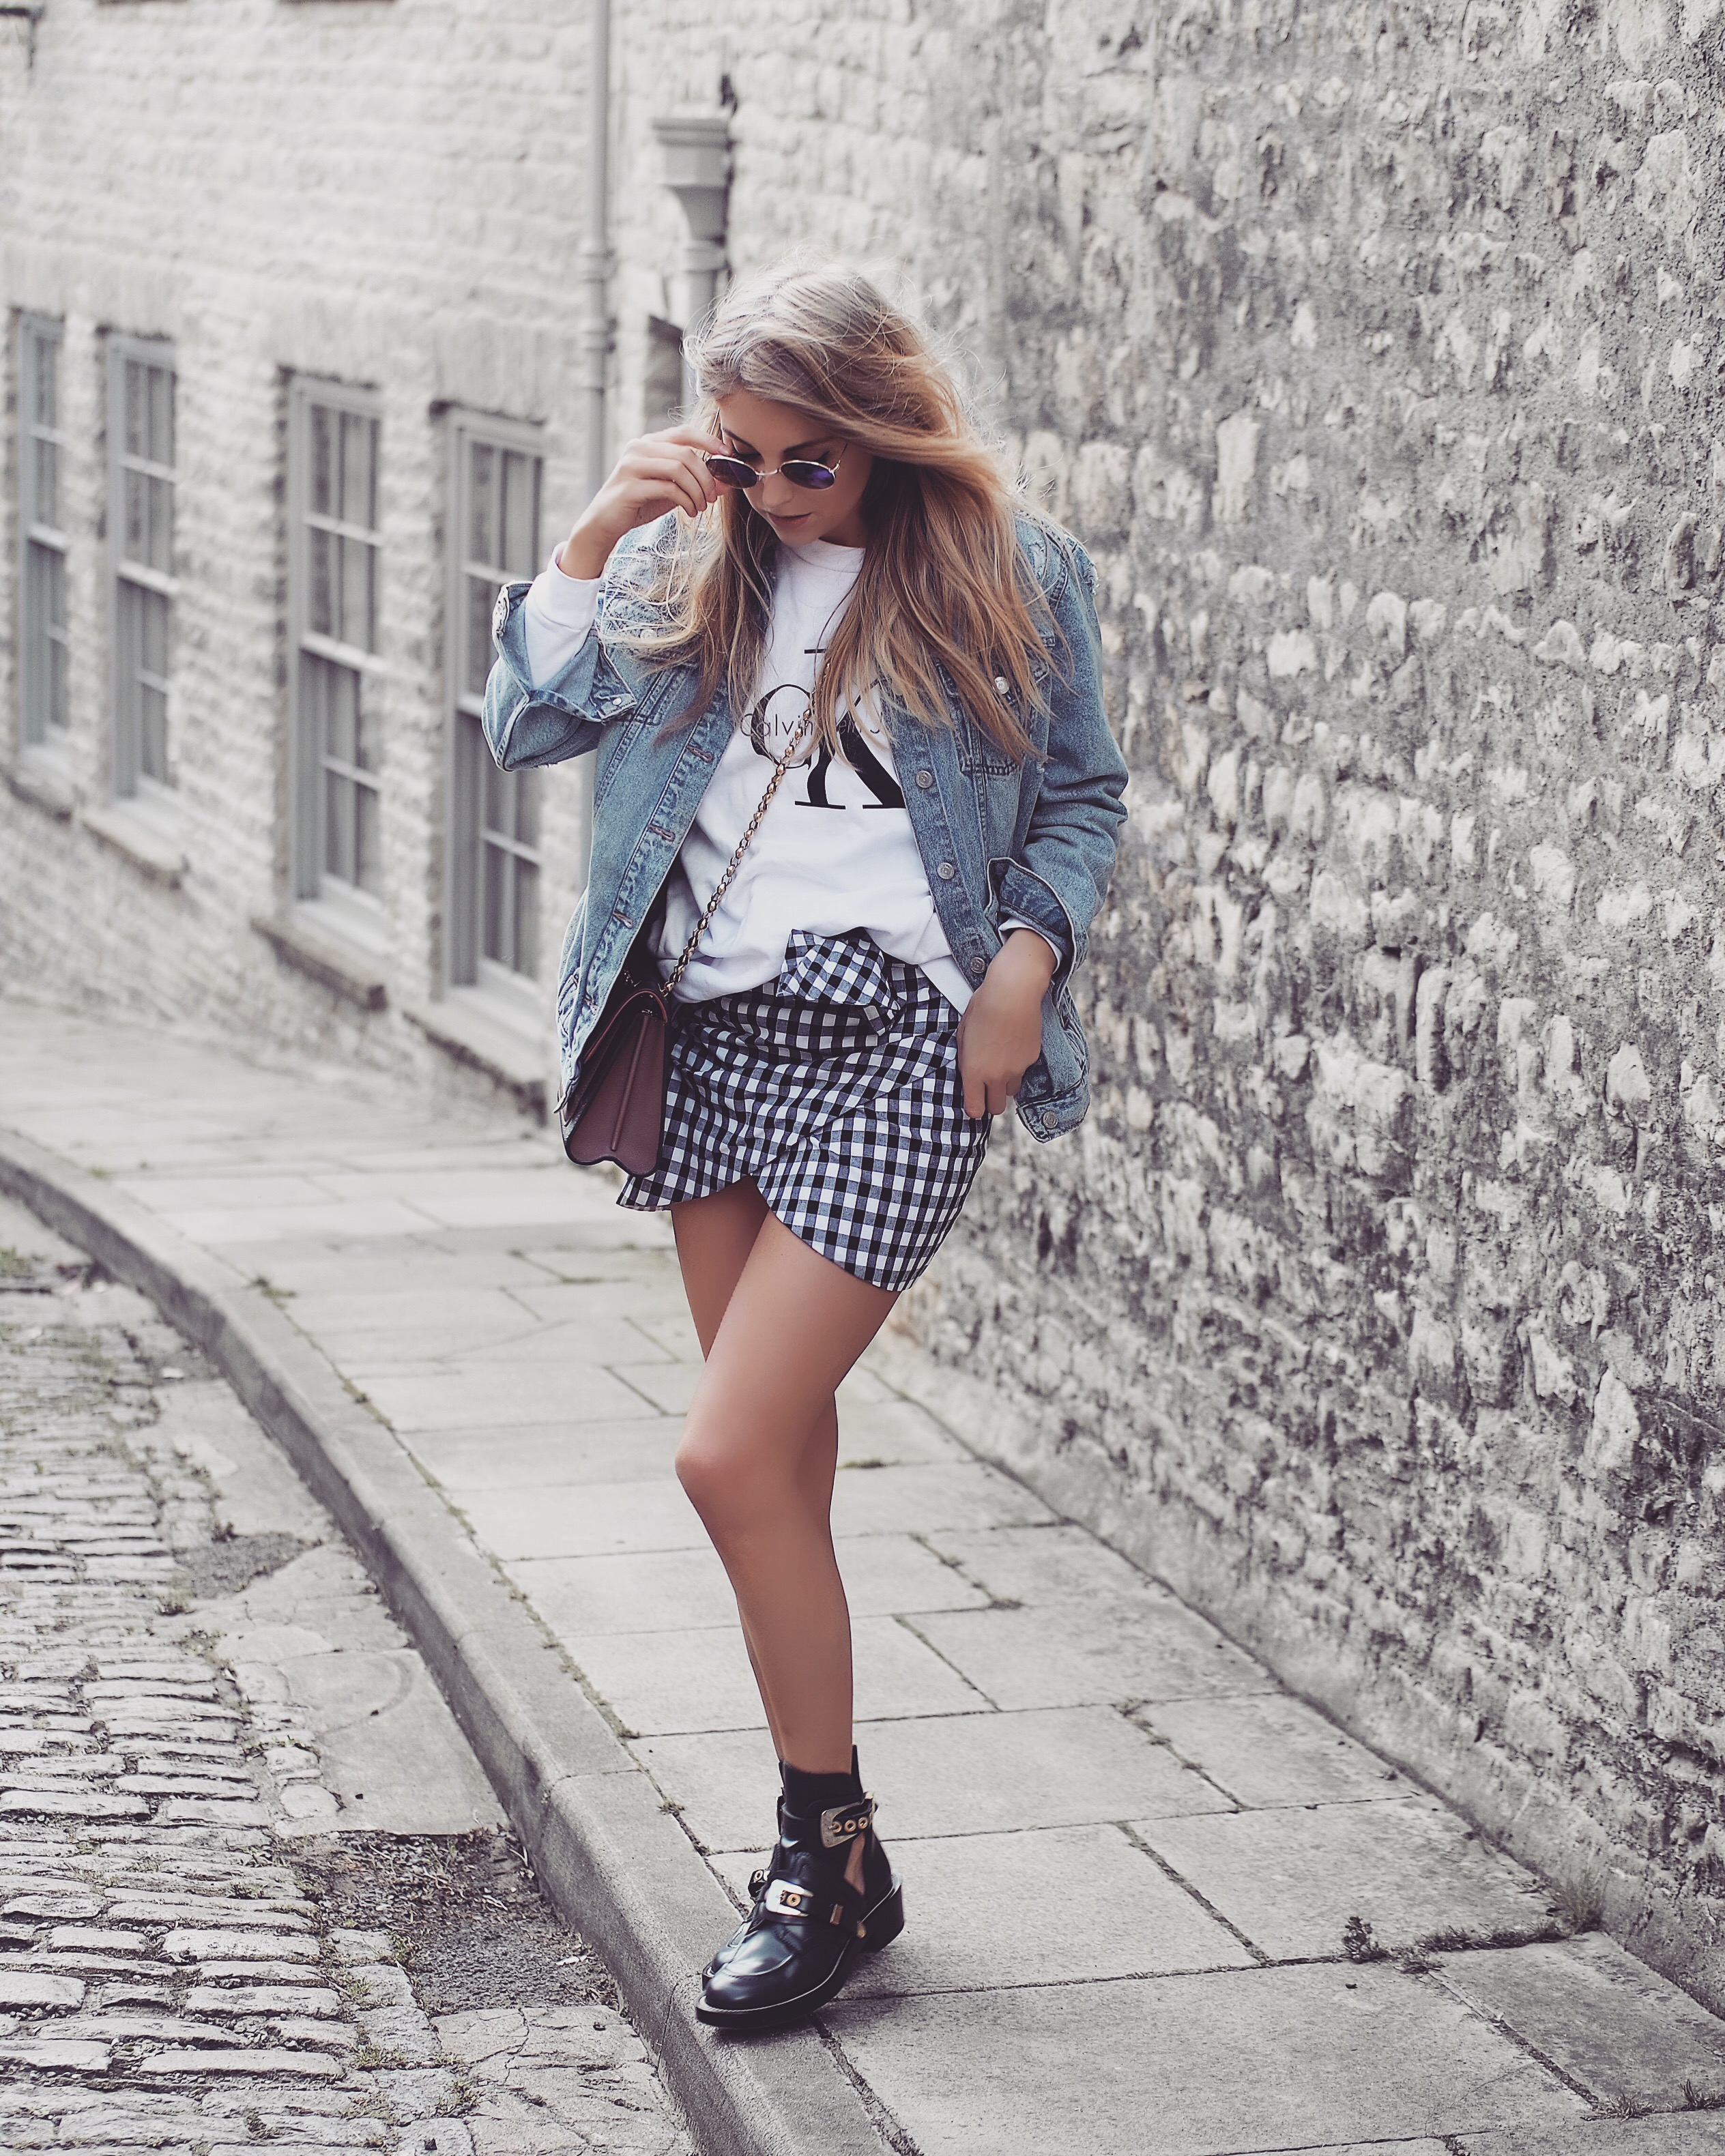 Gingham Skirt Outfit Inspiration Love Style Mindfulness Fashion Personal Style Blog